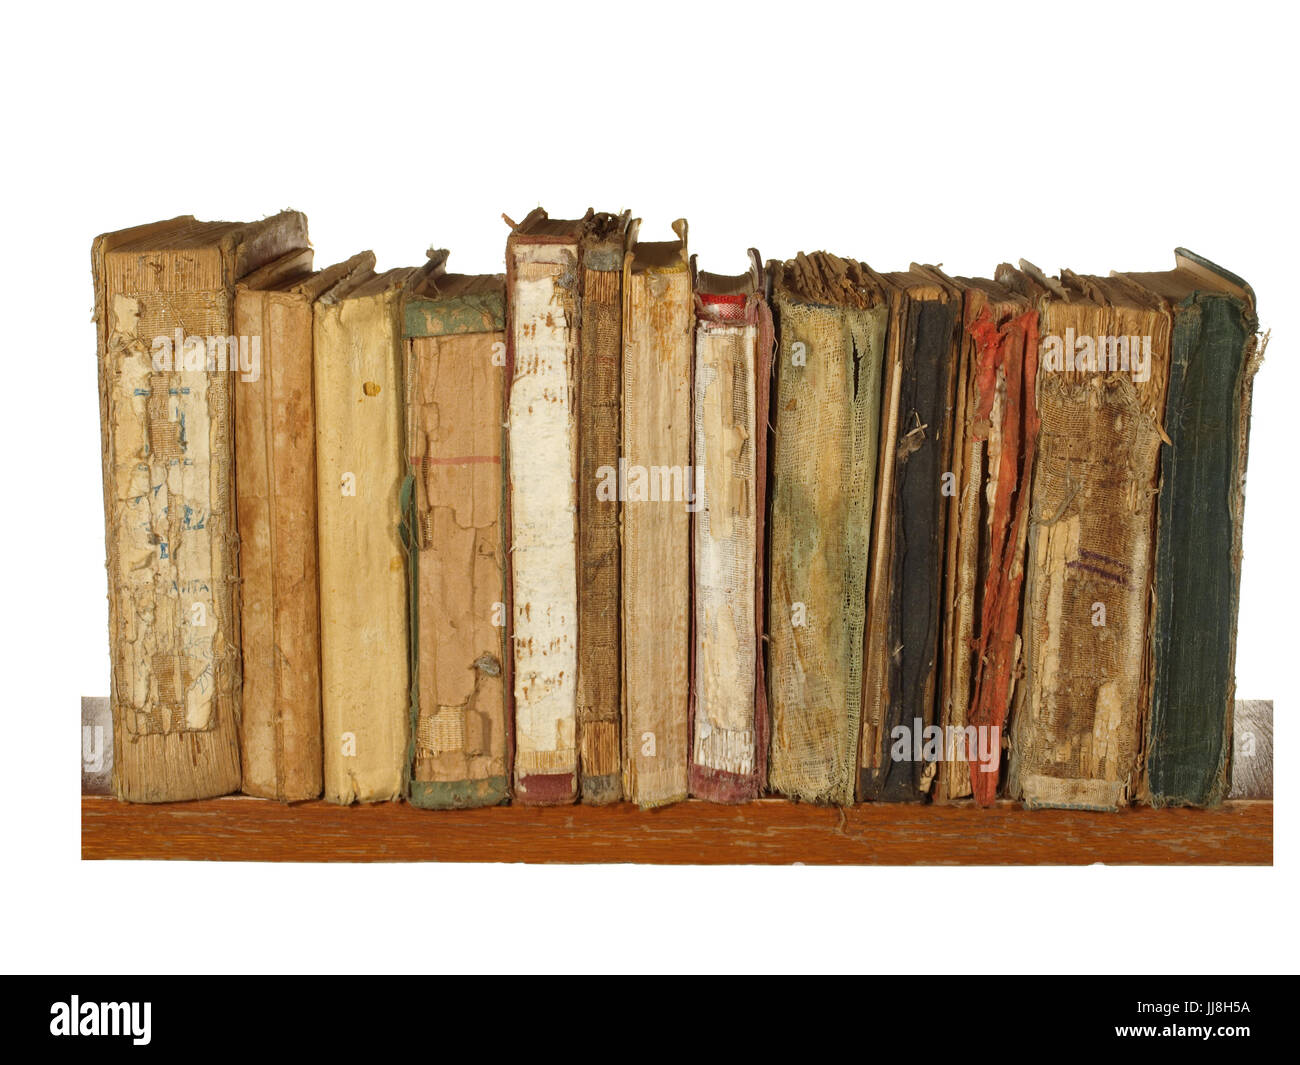 Very old and worn books on a wooden shelf isolated on white background. - Stock Image